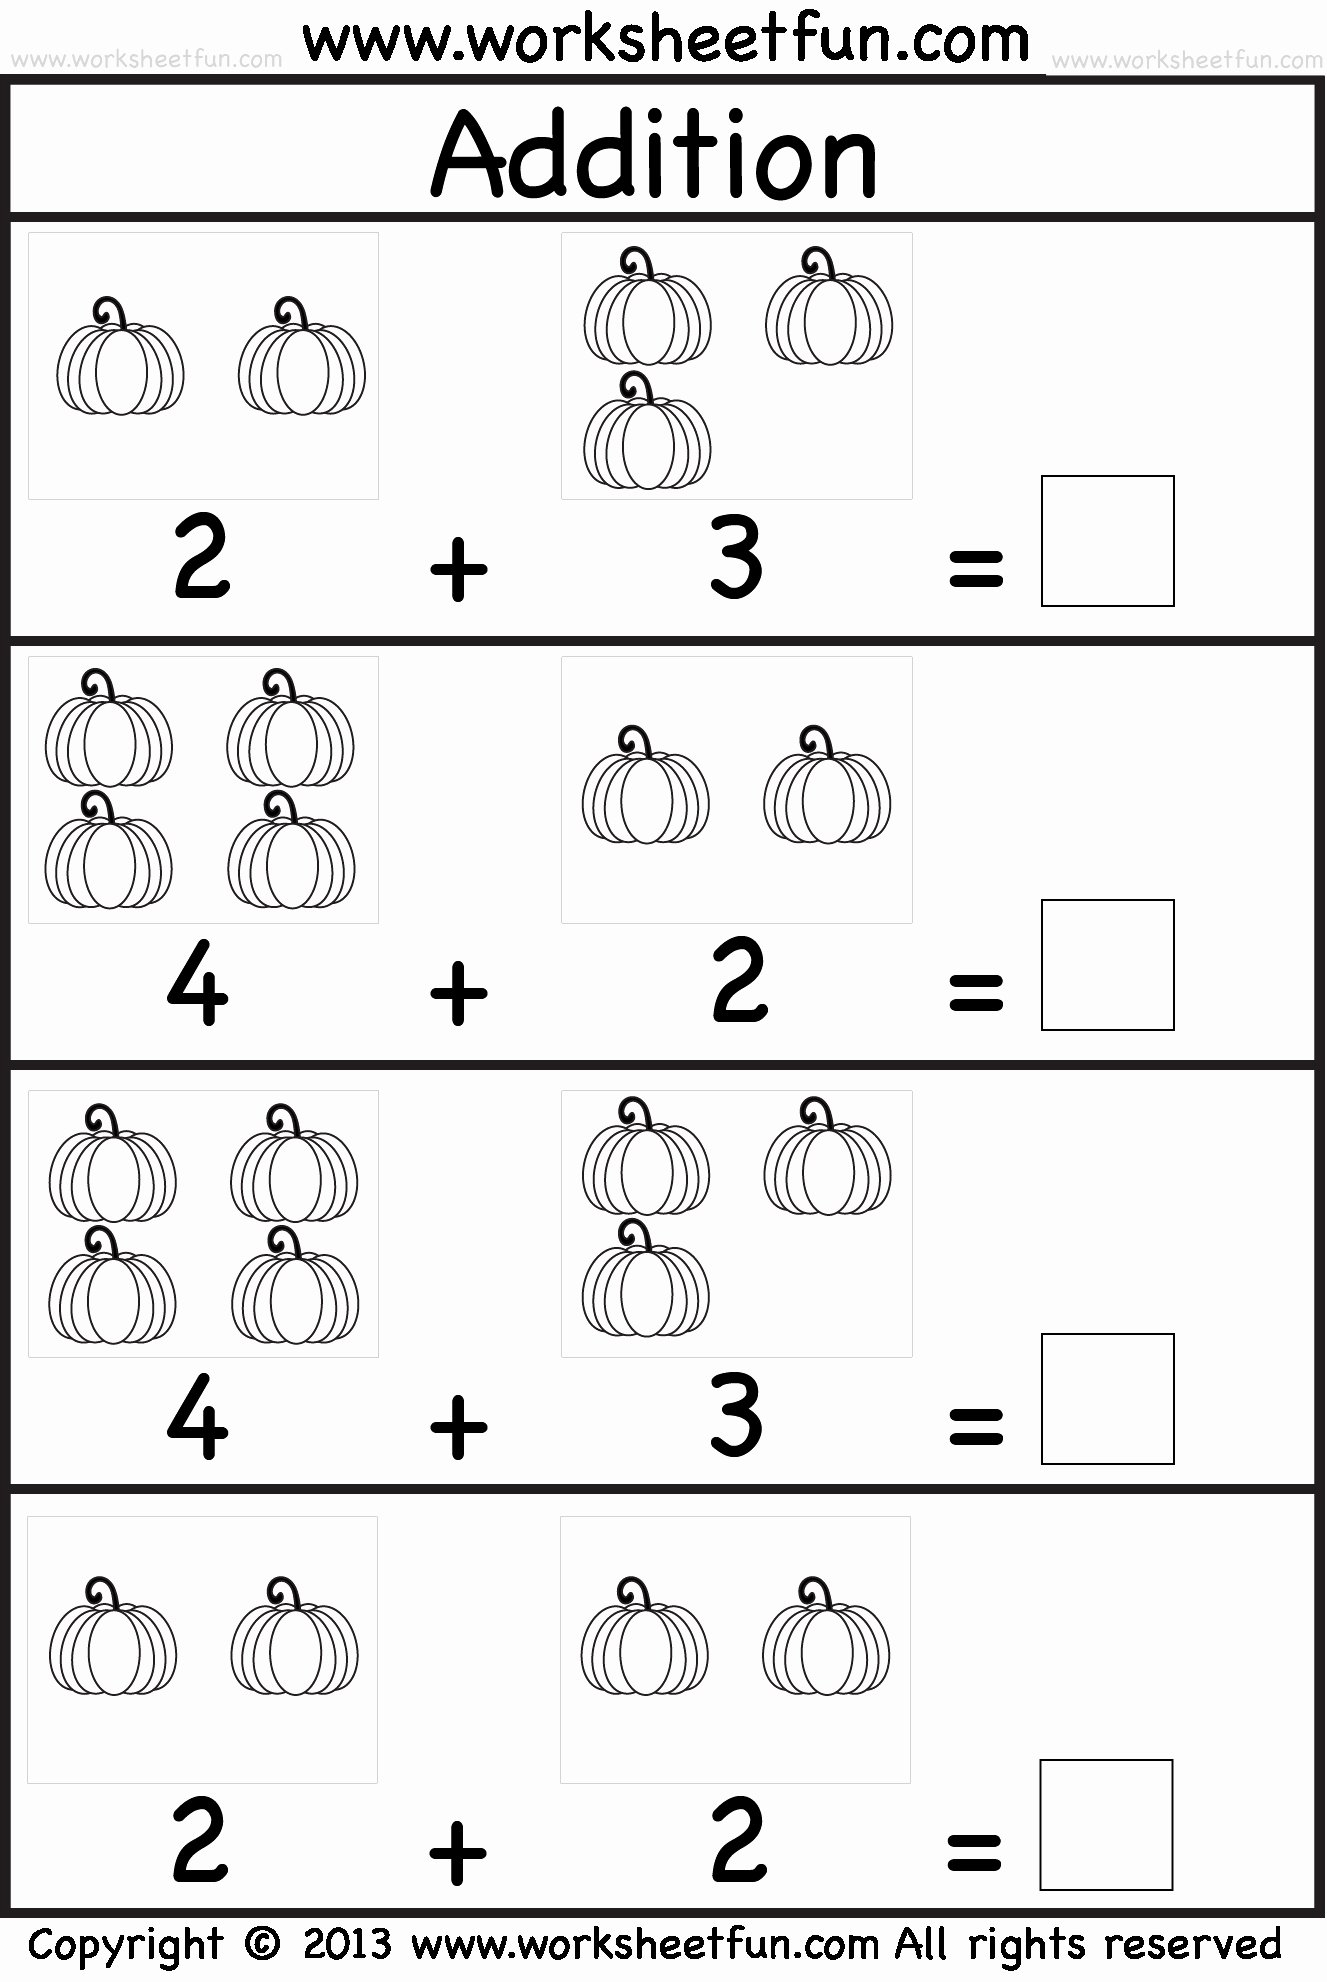 Mathematics Worksheets for Preschoolers Printable Kindergarten Math Worksheets for Printable Preschool